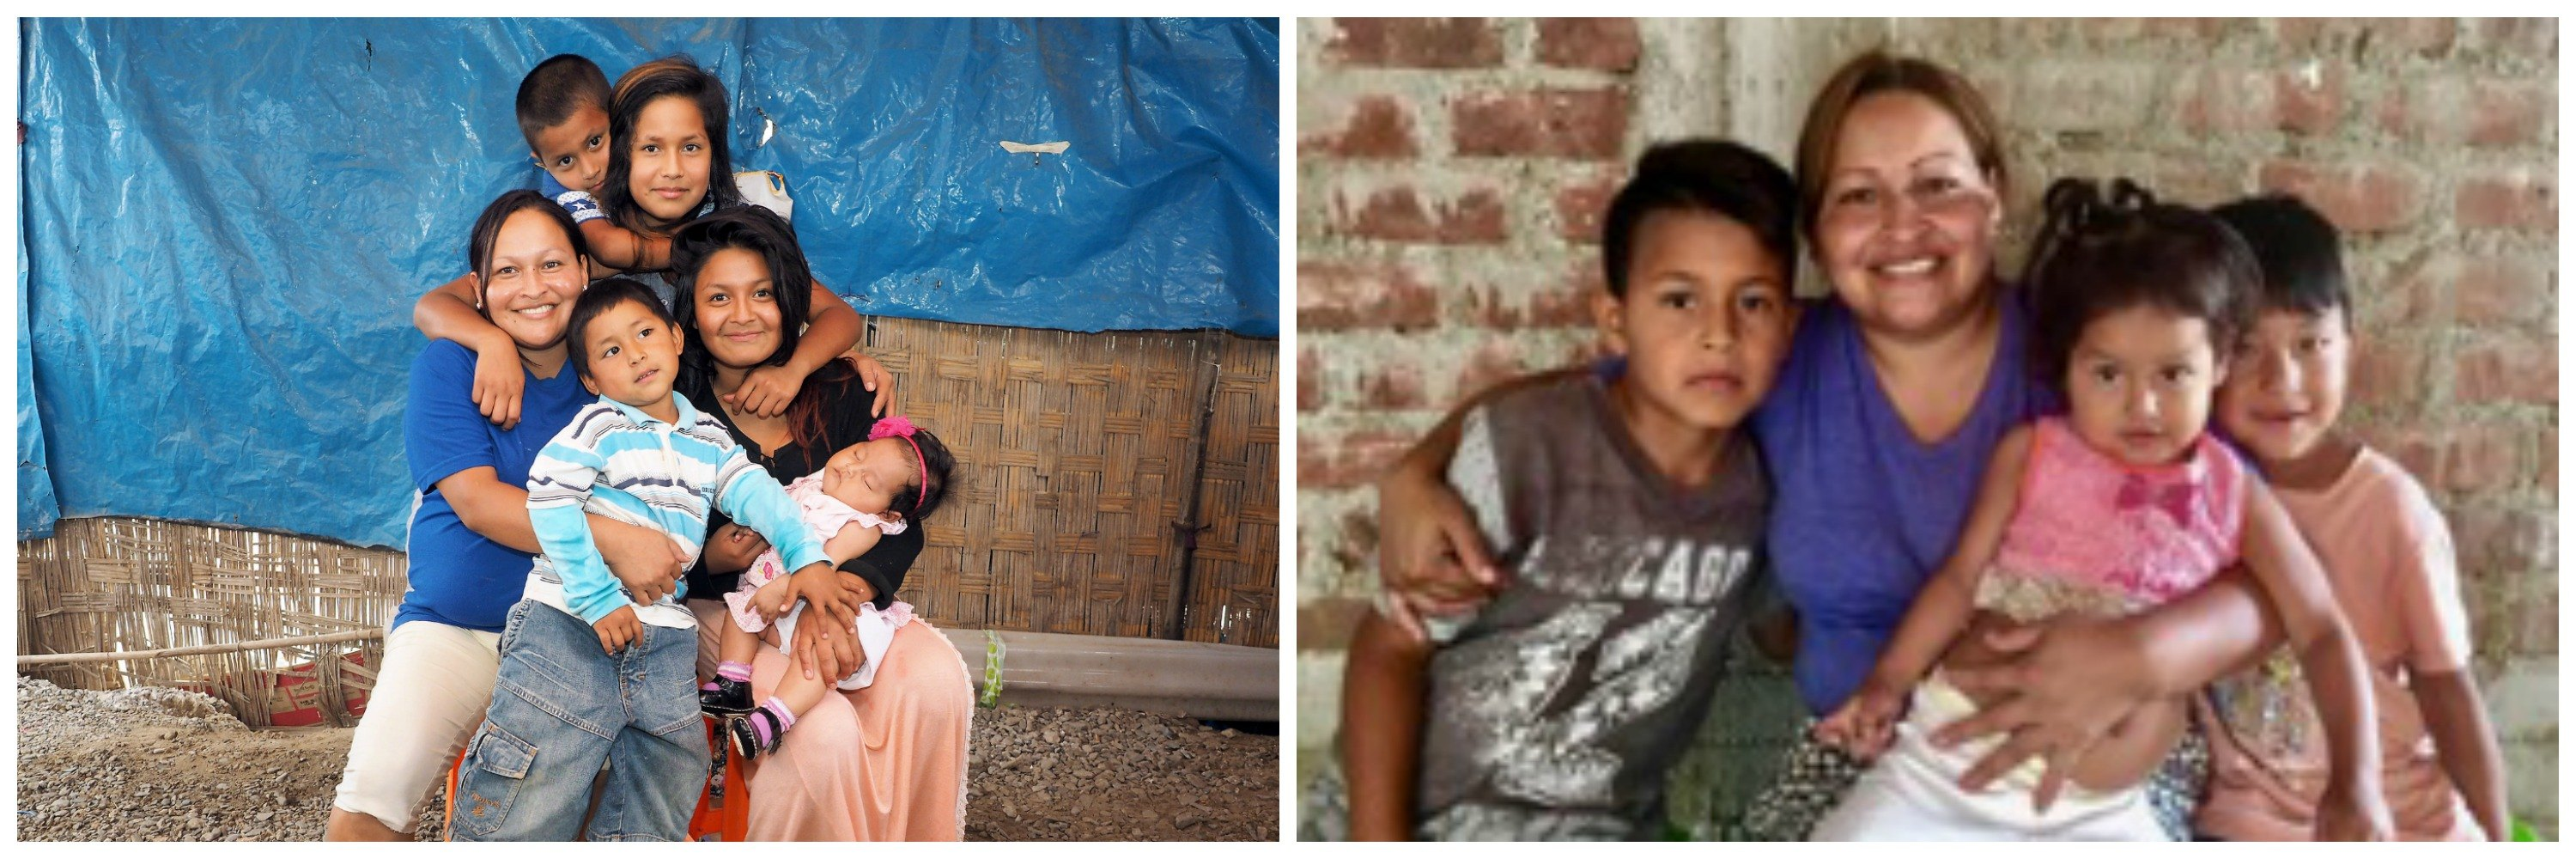 Luz Angelica and her family before and after